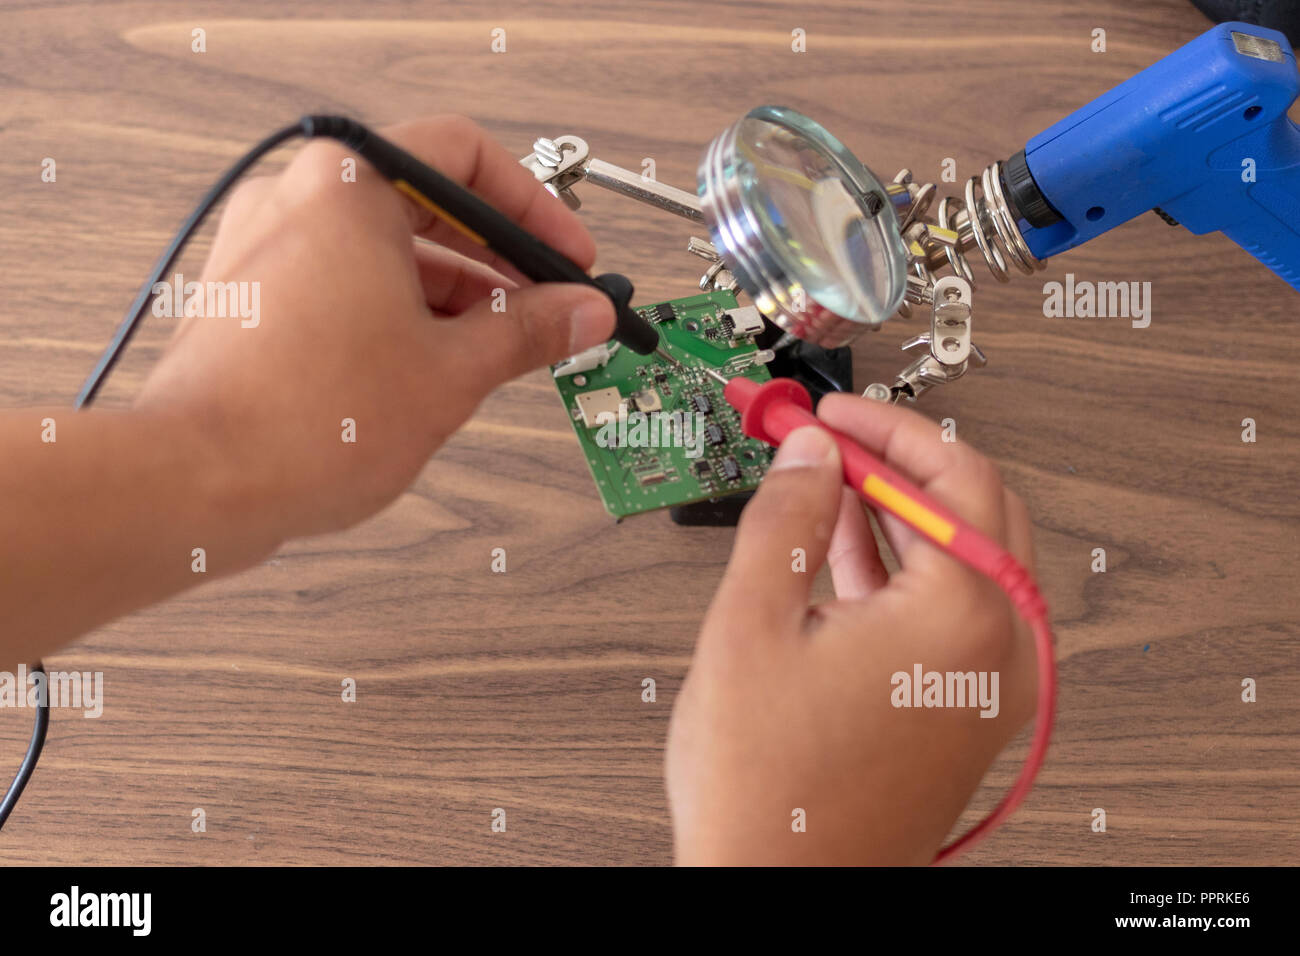 Electrician Part Stock Photos Images Alamy Glass On The Electronic Schematic Diagramideal Technology Background View Of Repair An Circuit Image